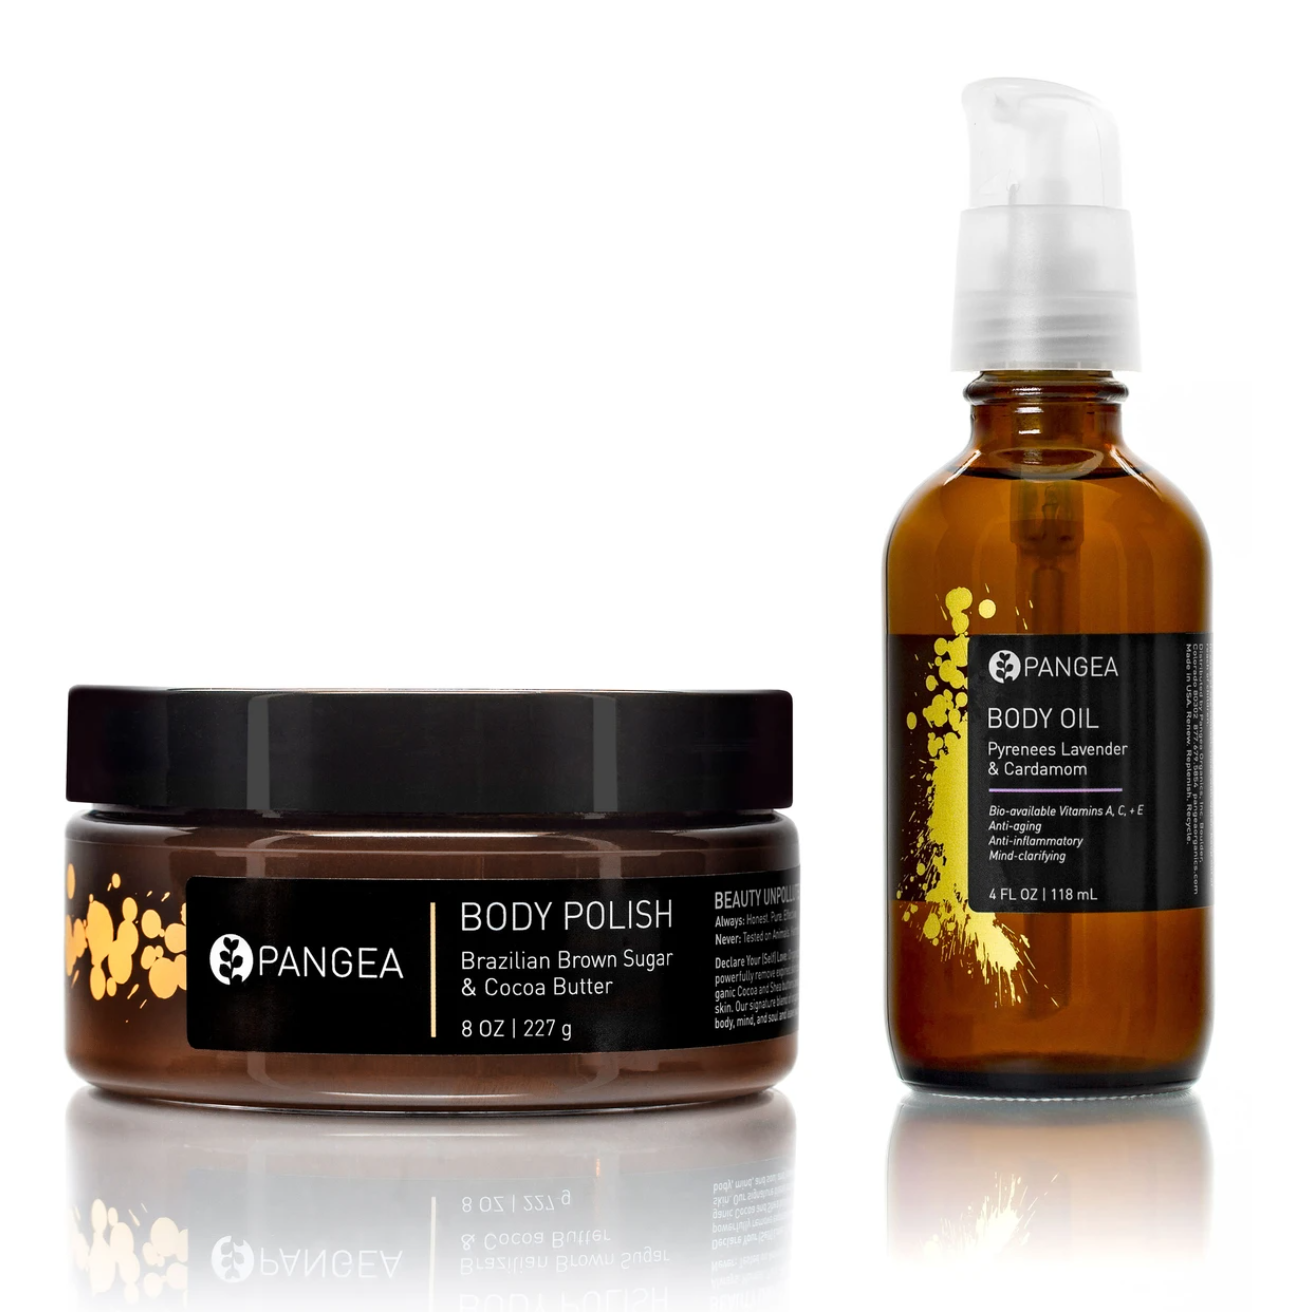 Pangeaorganics: Extra 20% off Sitewide From FatCoupon